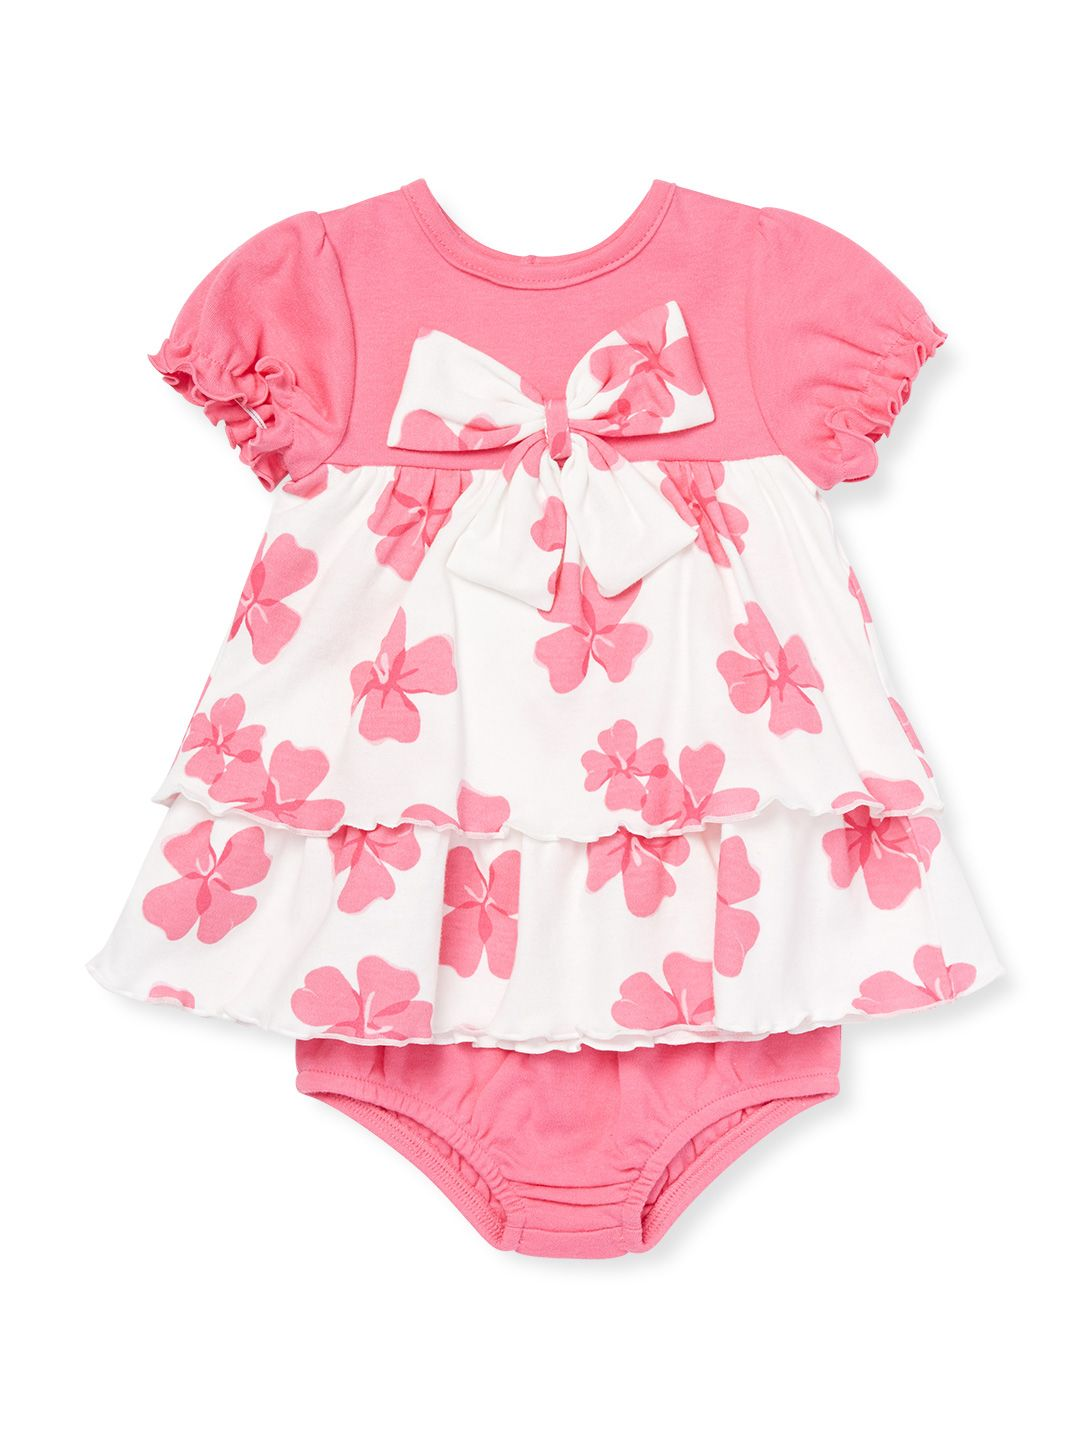 Tiered Floral Print Dress with Diaper Cover